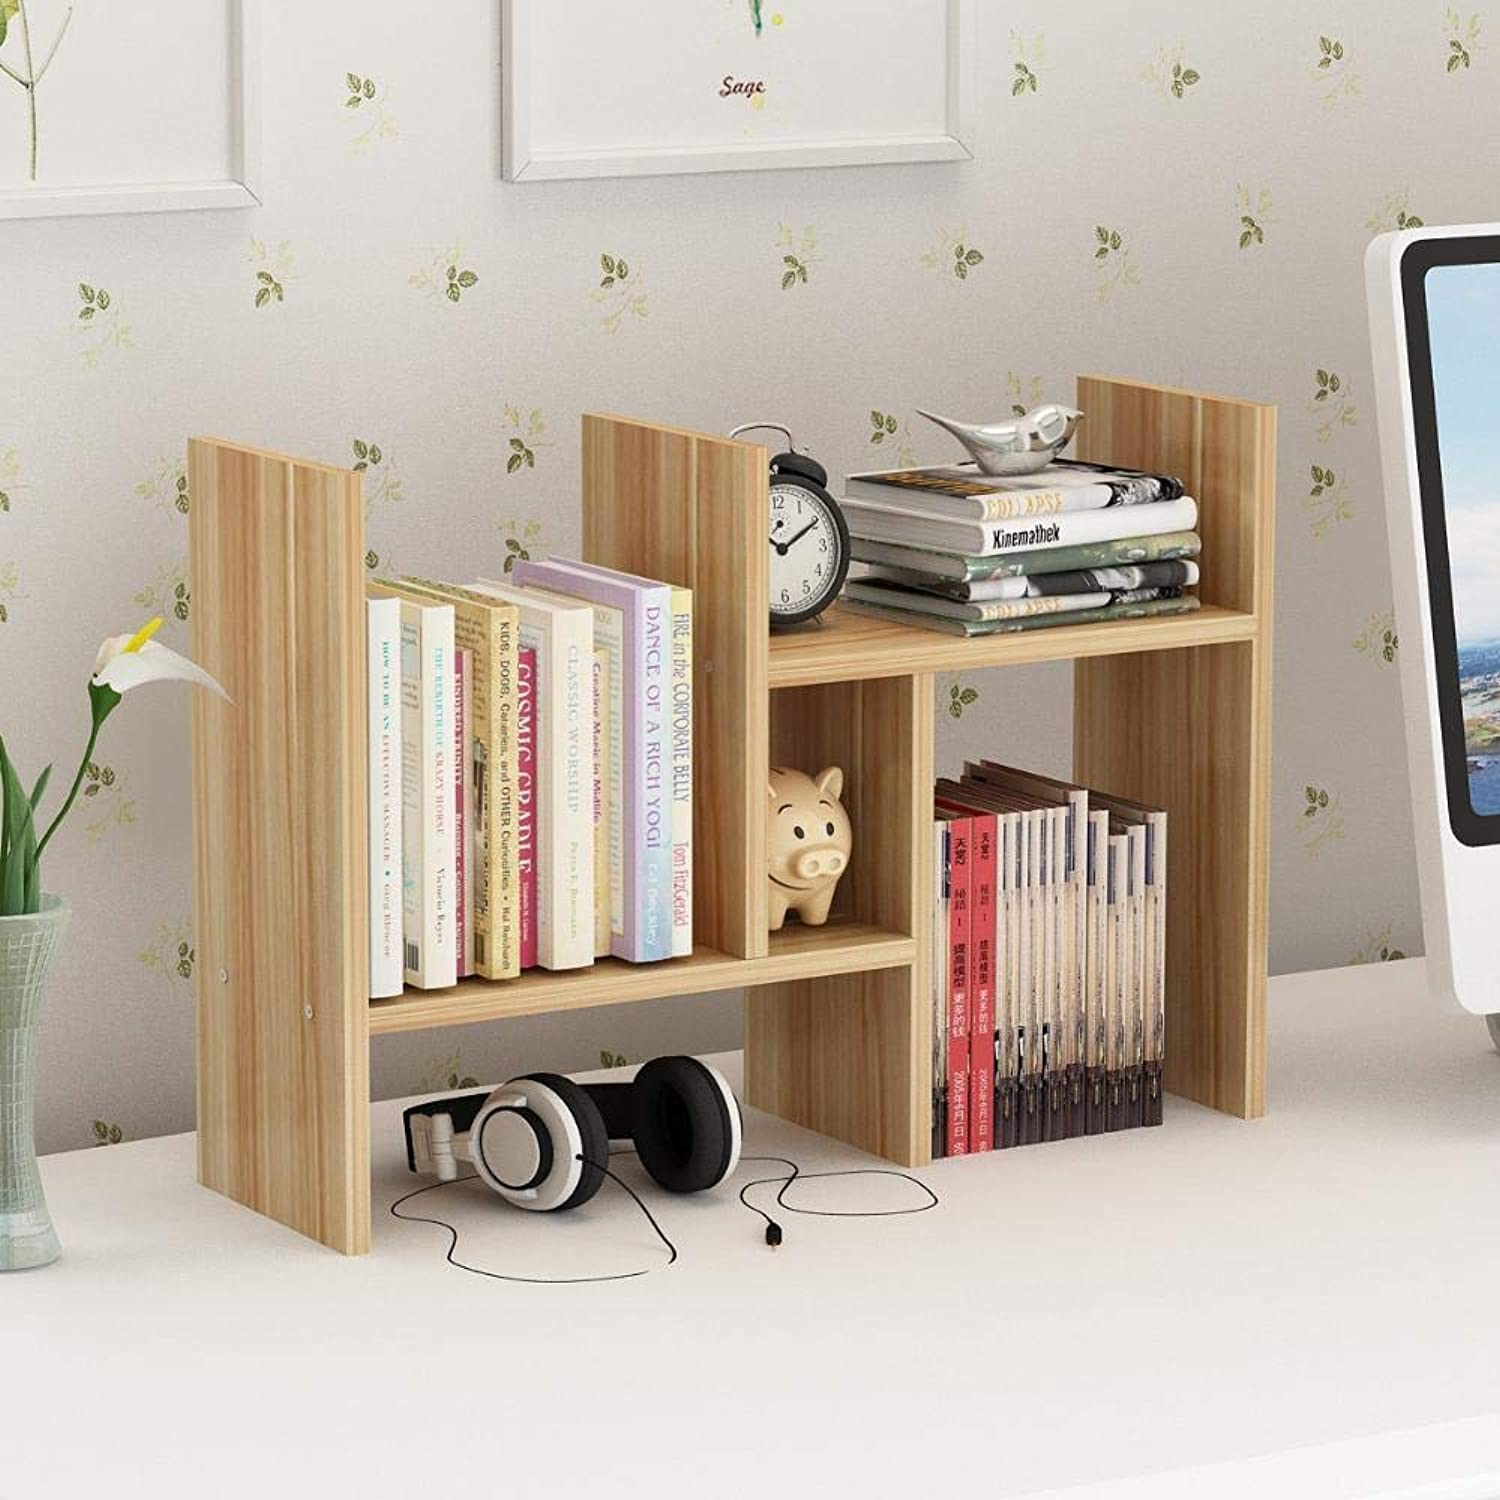 Yunfeng Bookshelf,Floor-Standing Multifunctional Rack Retractable Bookcase Small Office Storage Shelf